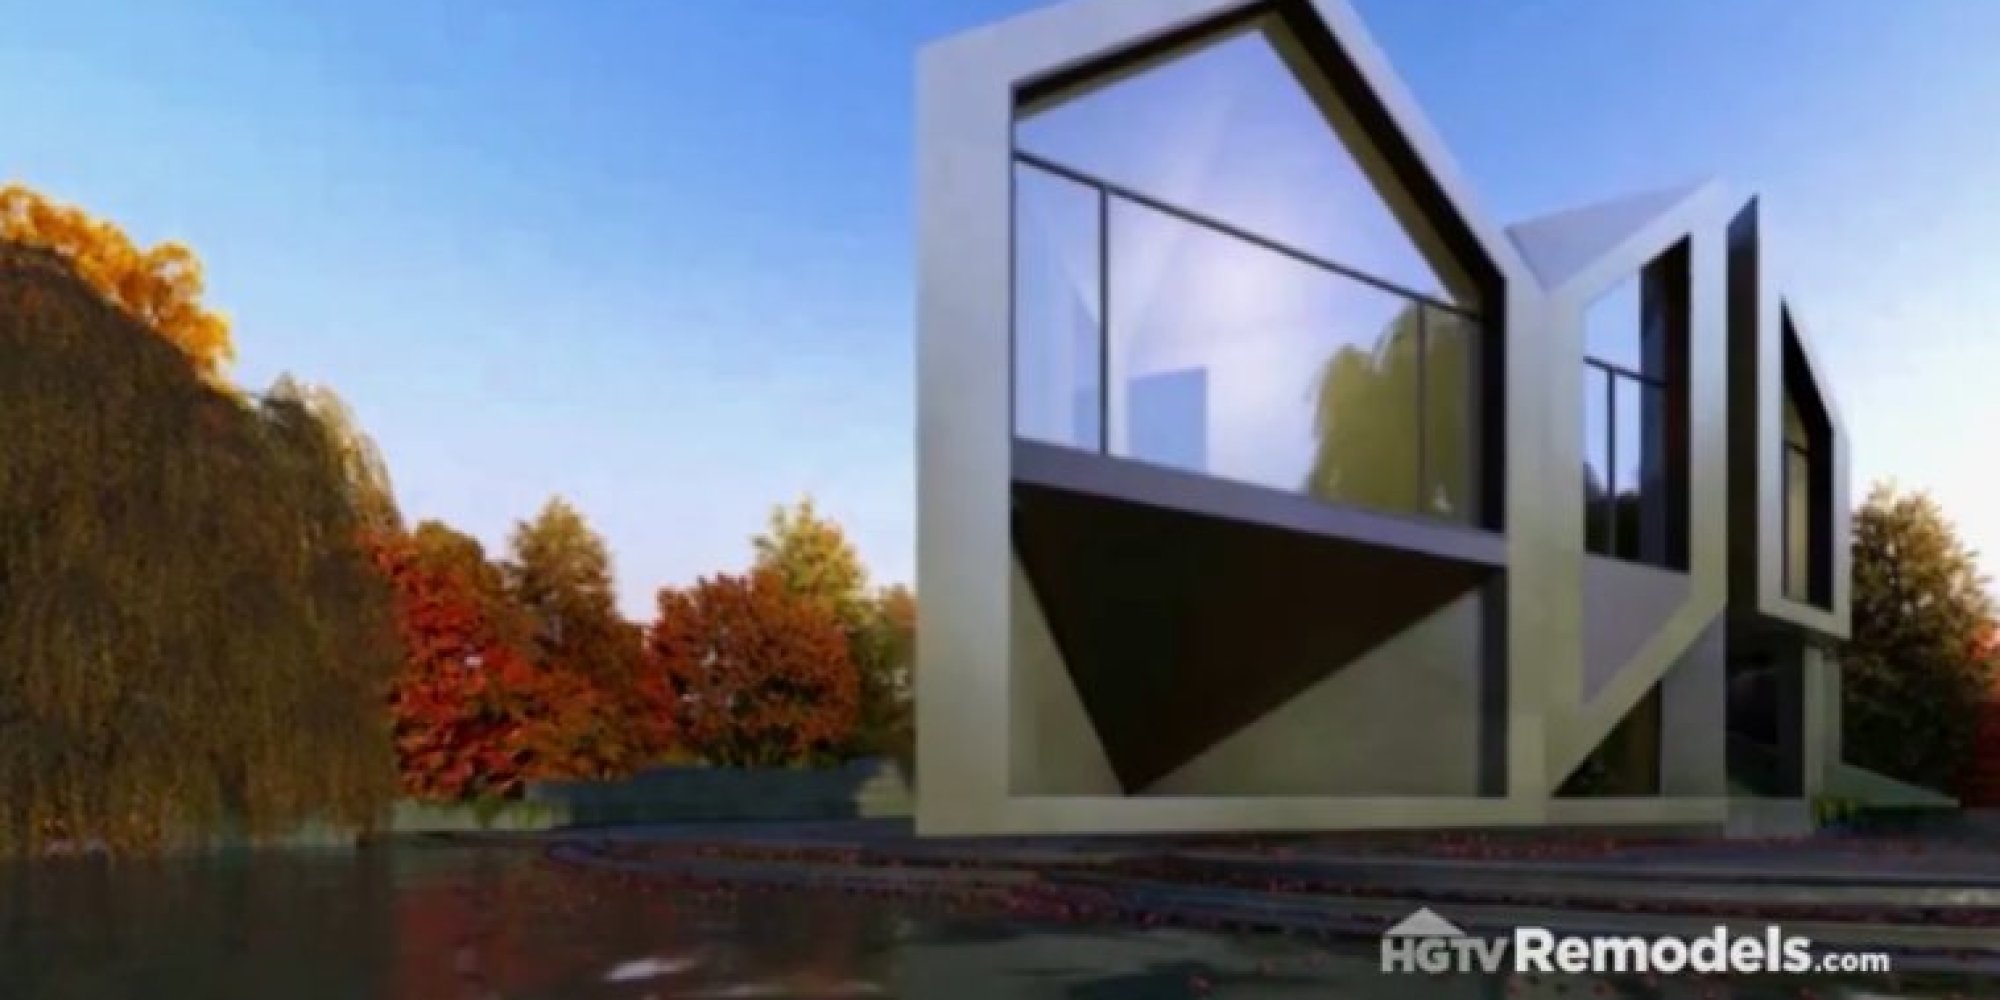 Rotating house offers you a view that changes with the seasons video huffpost - Rotating homes follow sun ...